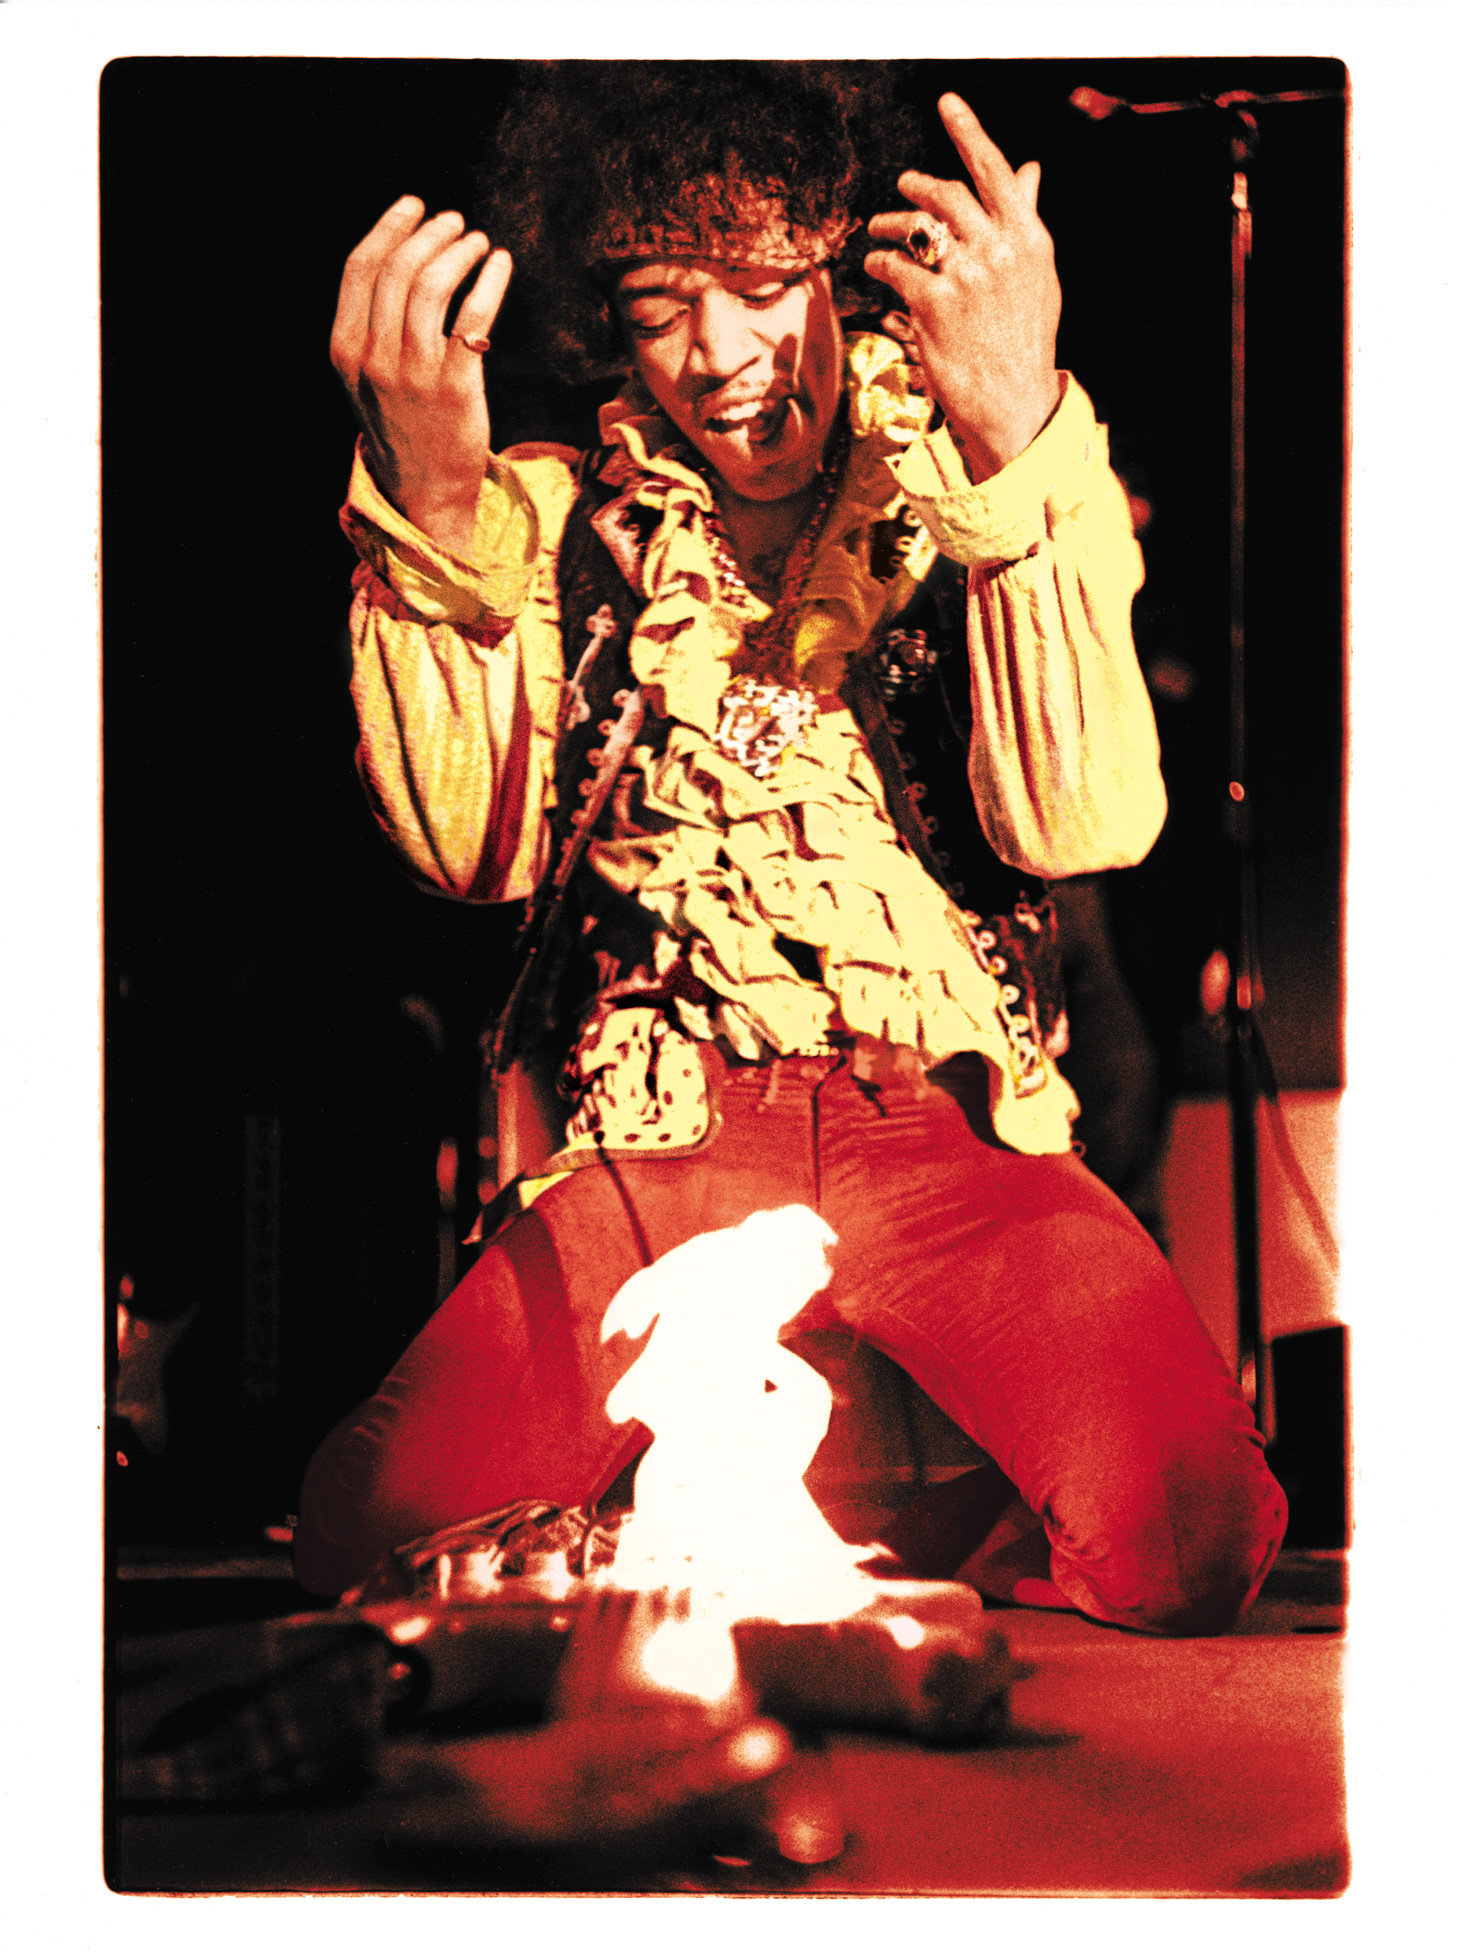 Ed Caraeff's photo of Jimi Hendrix burning his guitar at the Monterey International Pop Festival on June 18, 1967. Taken with a camera borrowed from his family optometrist when Caraeff was a high school junior, the photo made the cover of Rolling Stone, twice, in the decades since the festival.